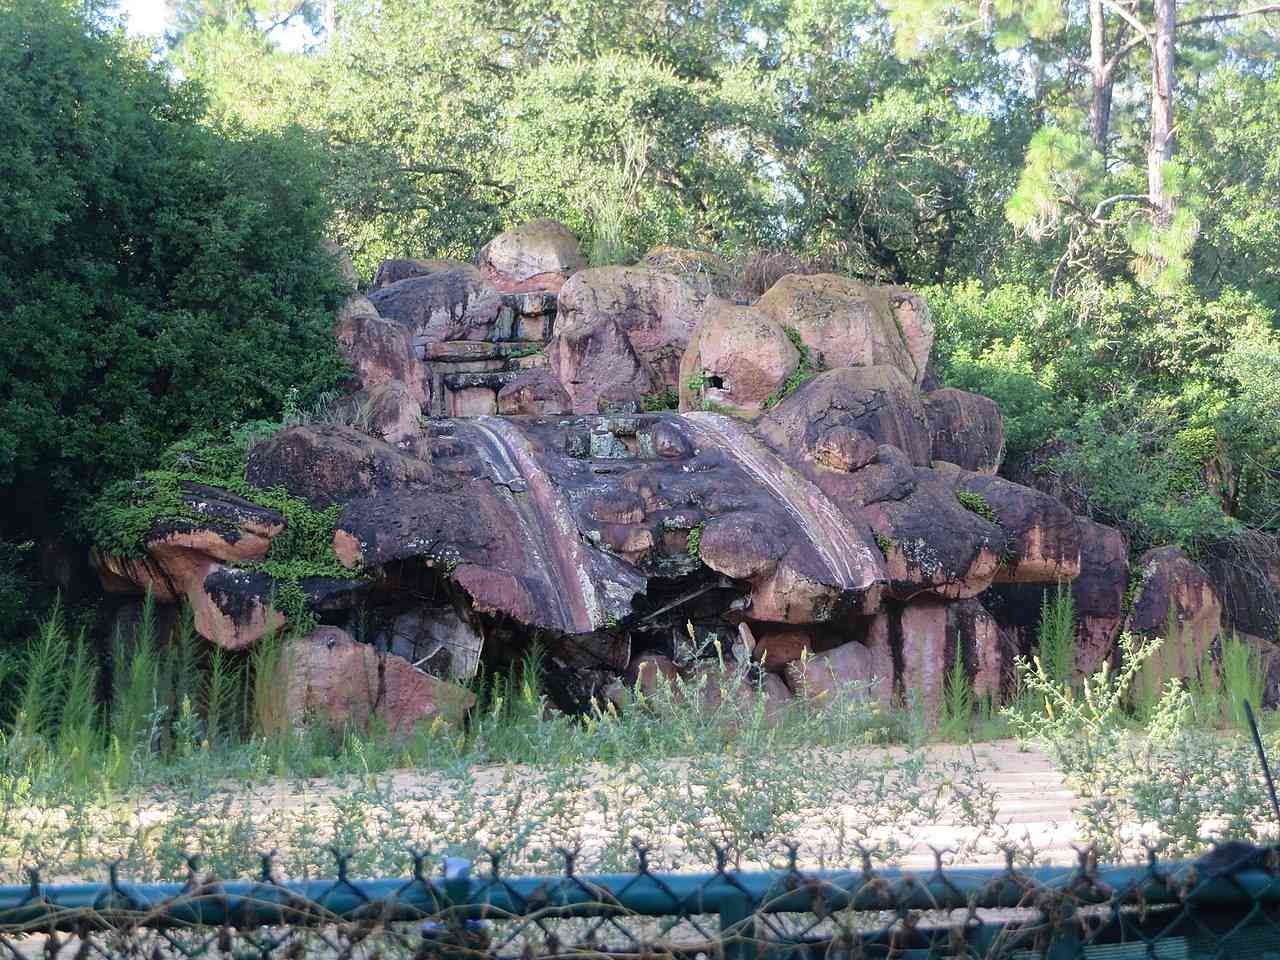 Disney's River Country abandoned water park